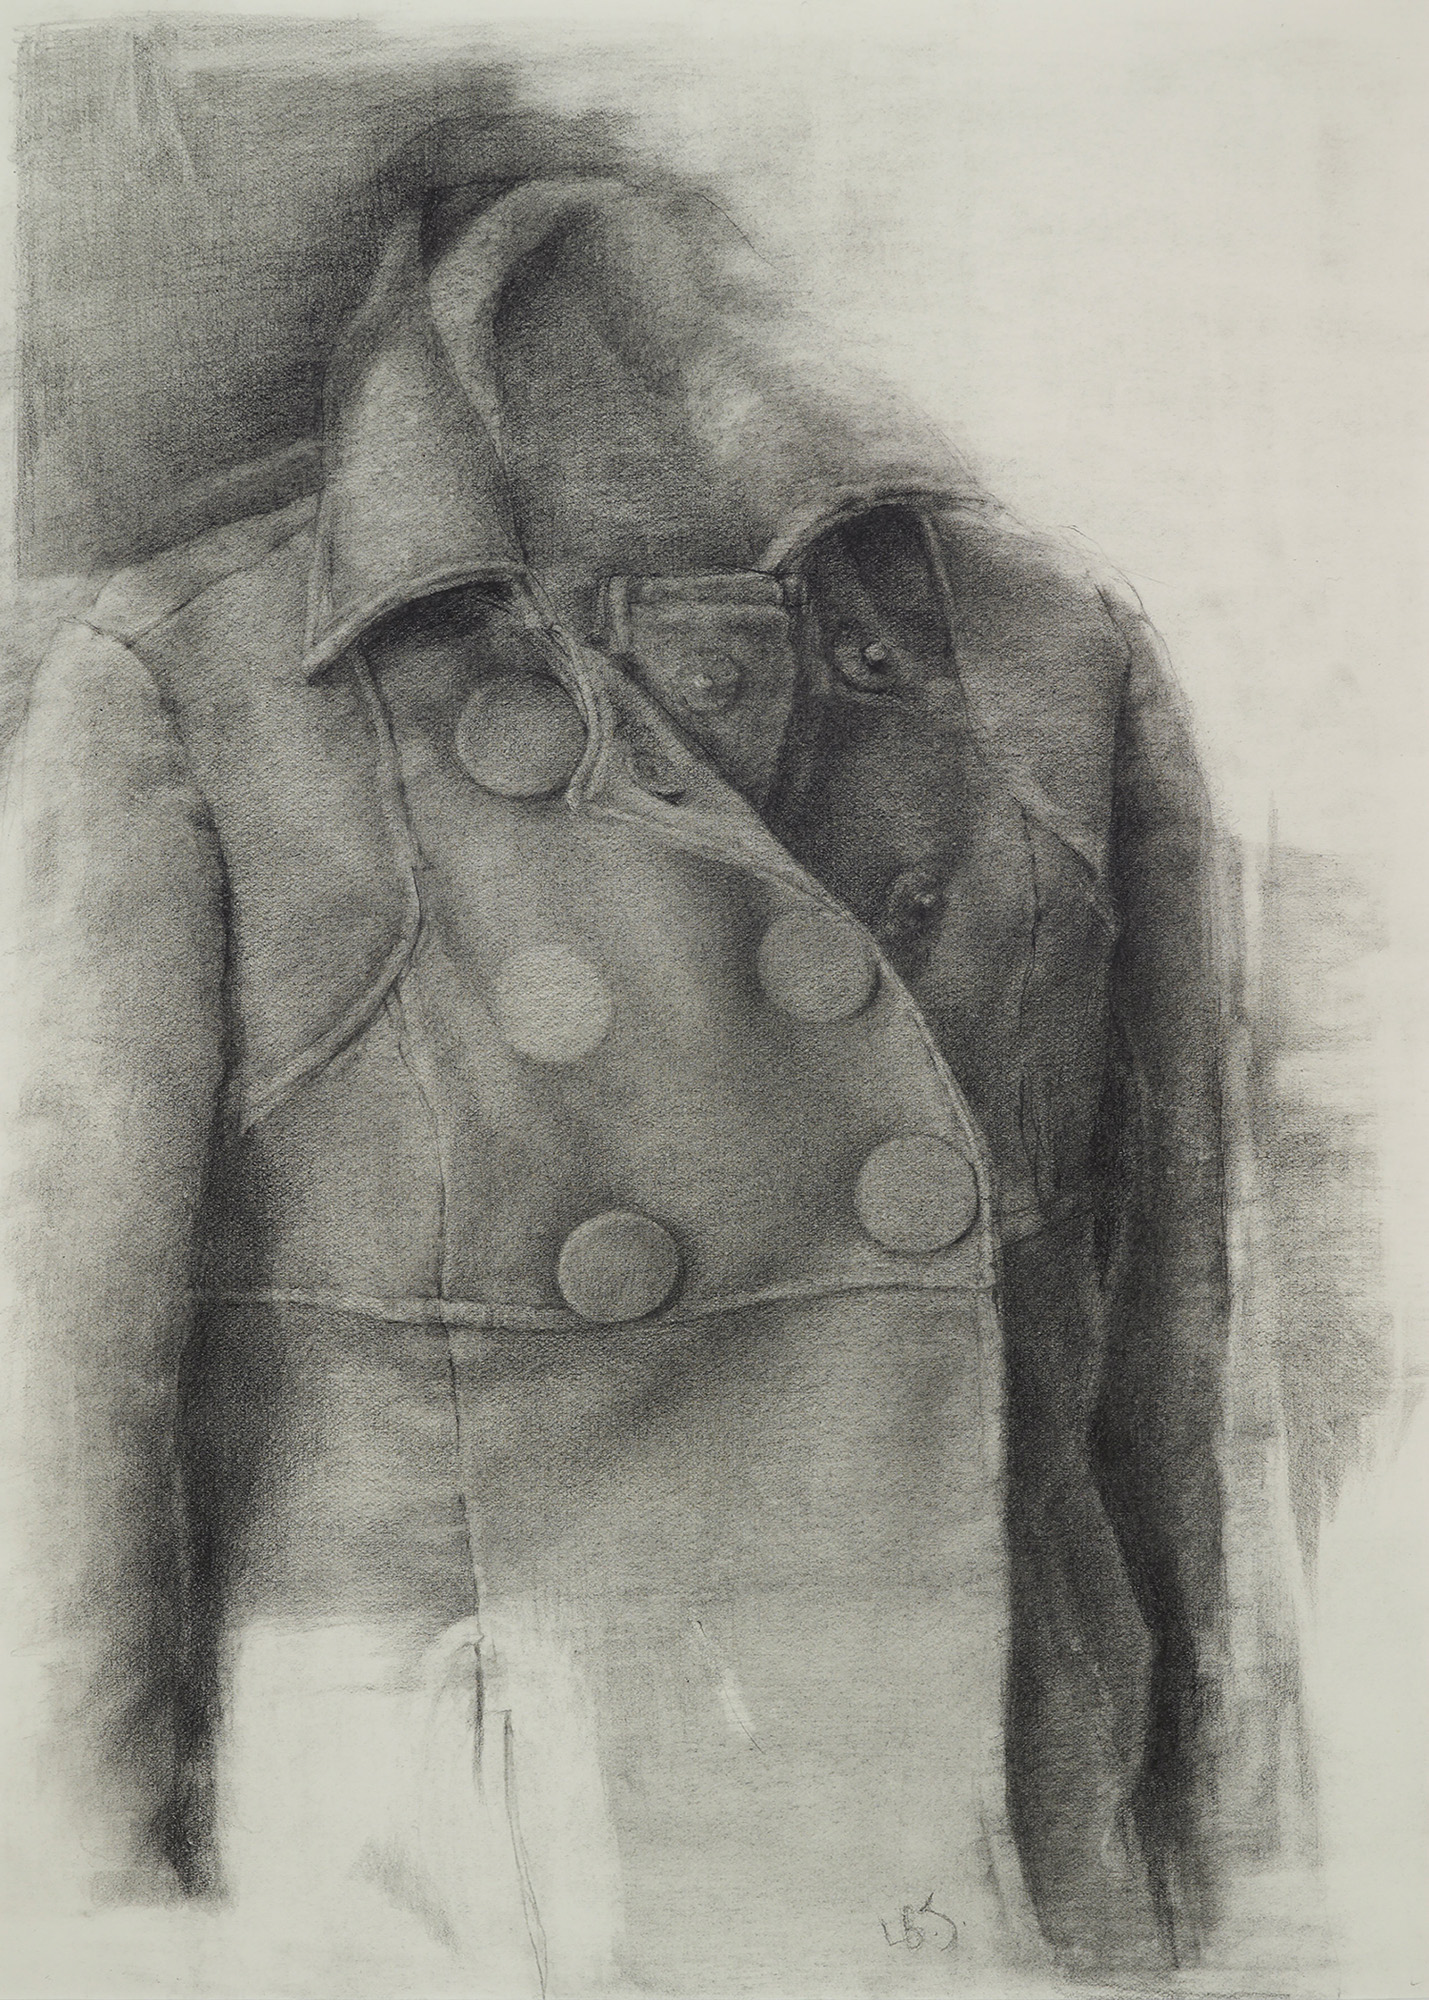 Lori Brook Johnson Winter Coat, Graphite, 14 x 10 inches